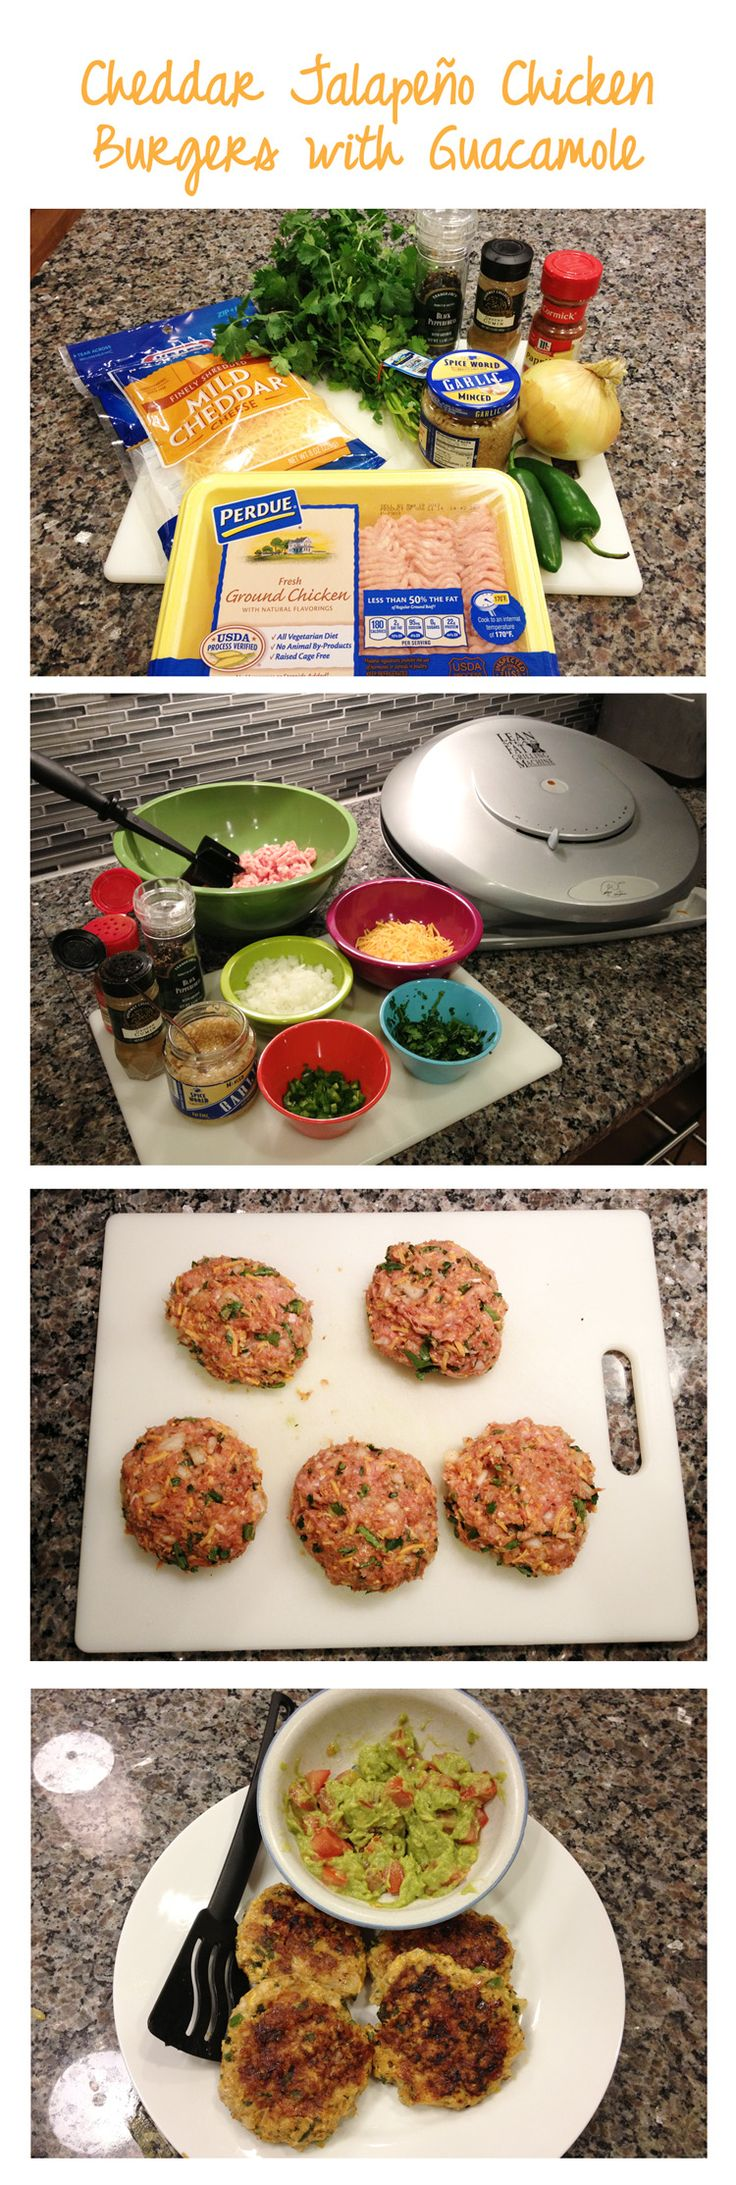 Cheddar Jalapeno Chicken Burger Recipe. I tried this recipe for father's day and they're AMAZING :)